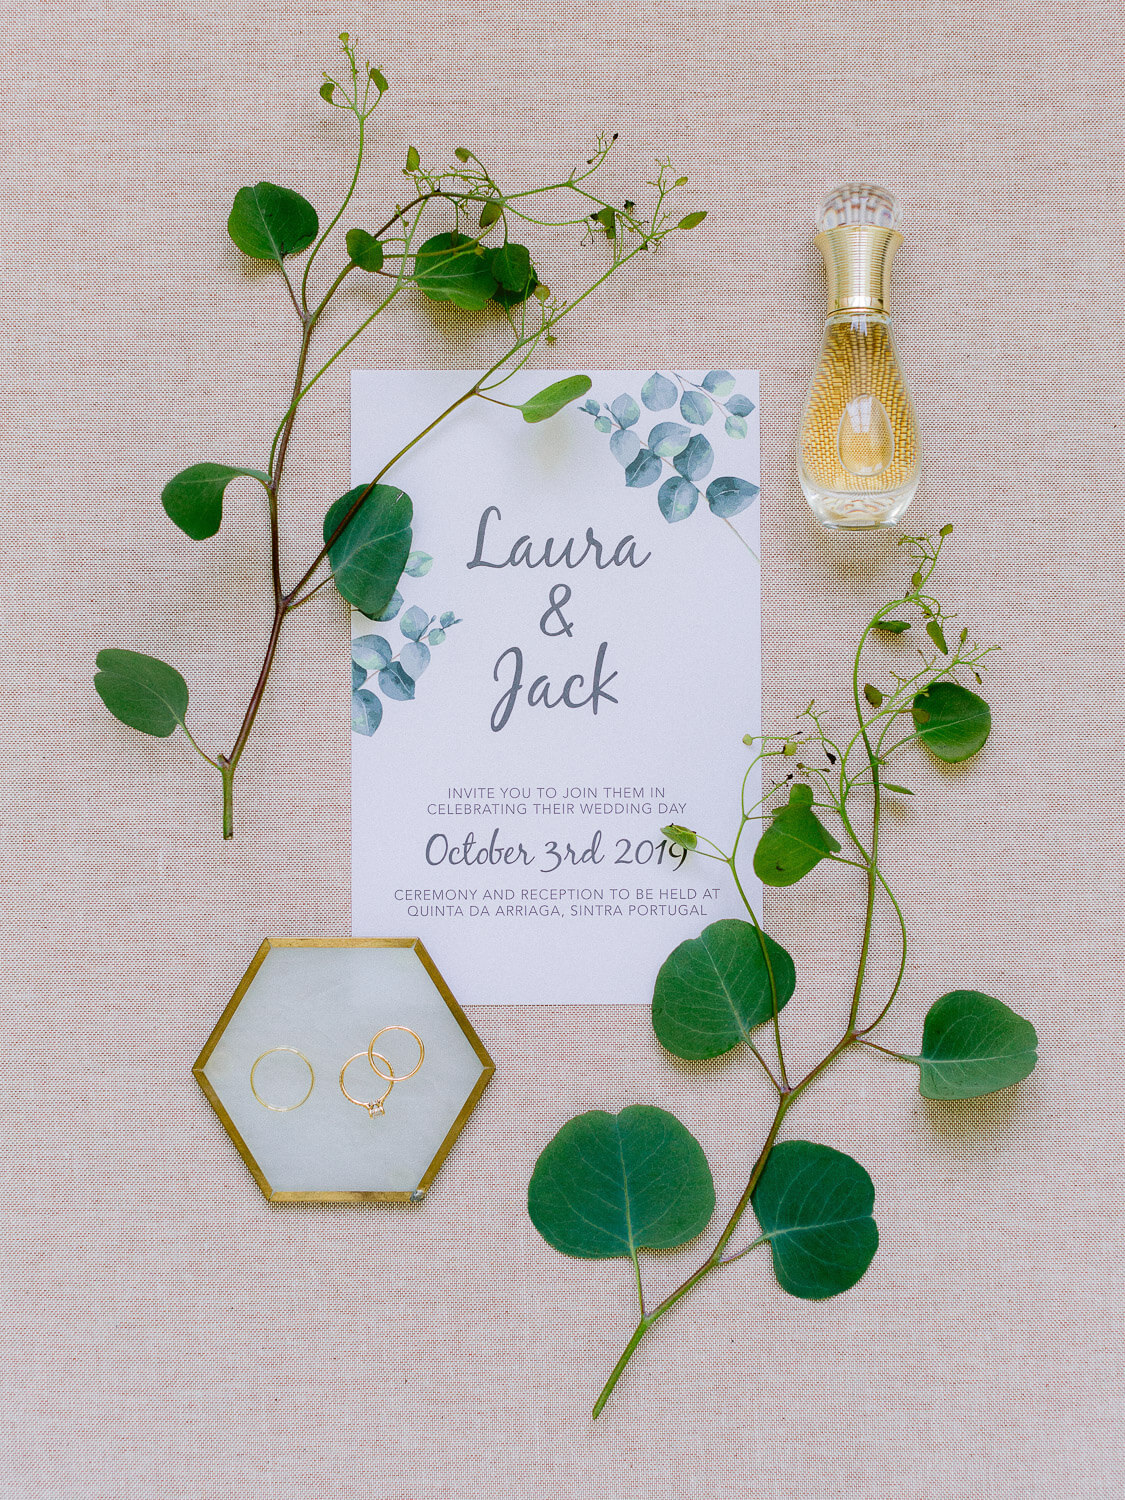 wedding flat lay with wedding bands, perfume, invitation and greenery by Portugal Wedding Photographer